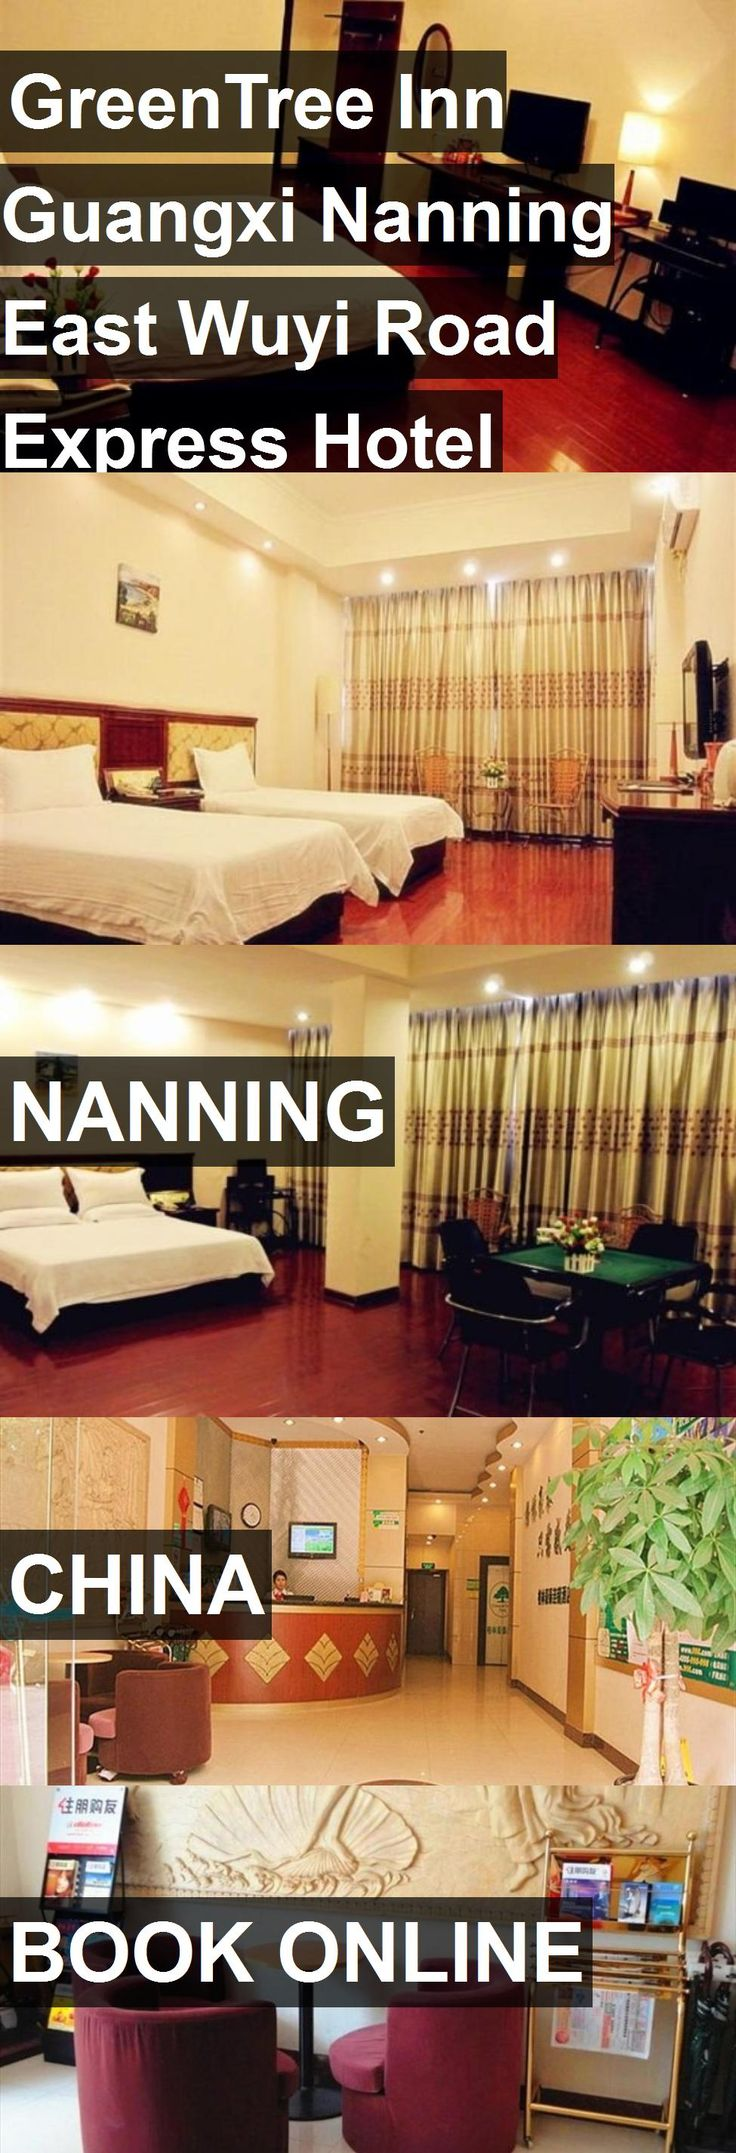 GreenTree Inn Guangxi Nanning East Wuyi Road Express Hotel in Nanning, China. For more information, photos, reviews and best prices please follow the link. #China #Nanning #travel #vacation #hotel